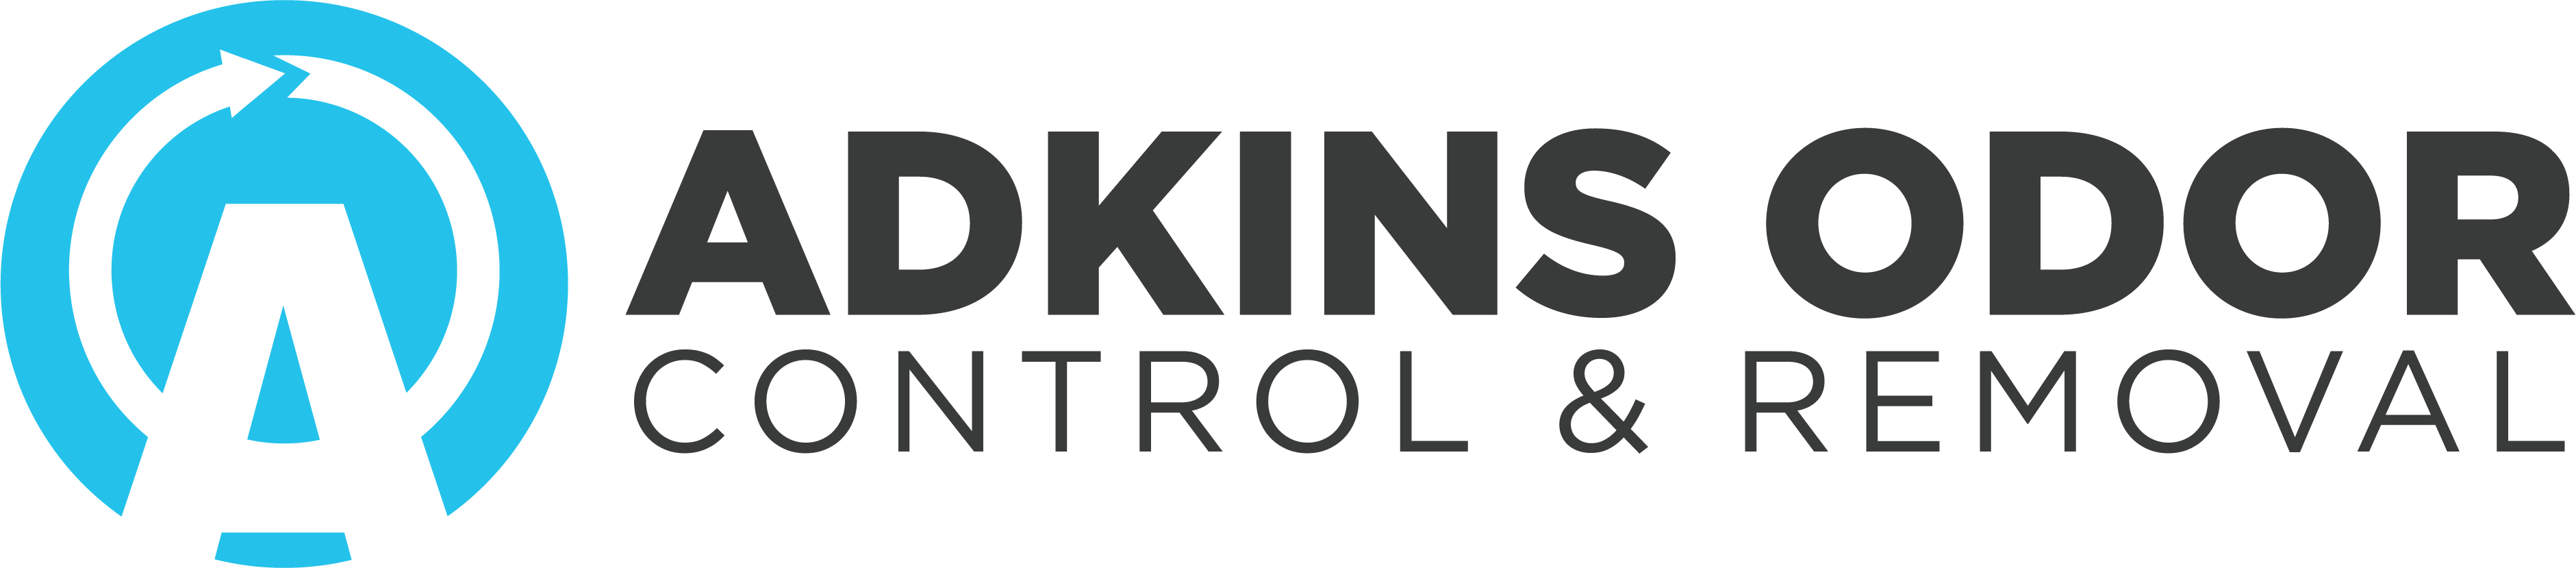 Home - Adkins Odor Control & Removal